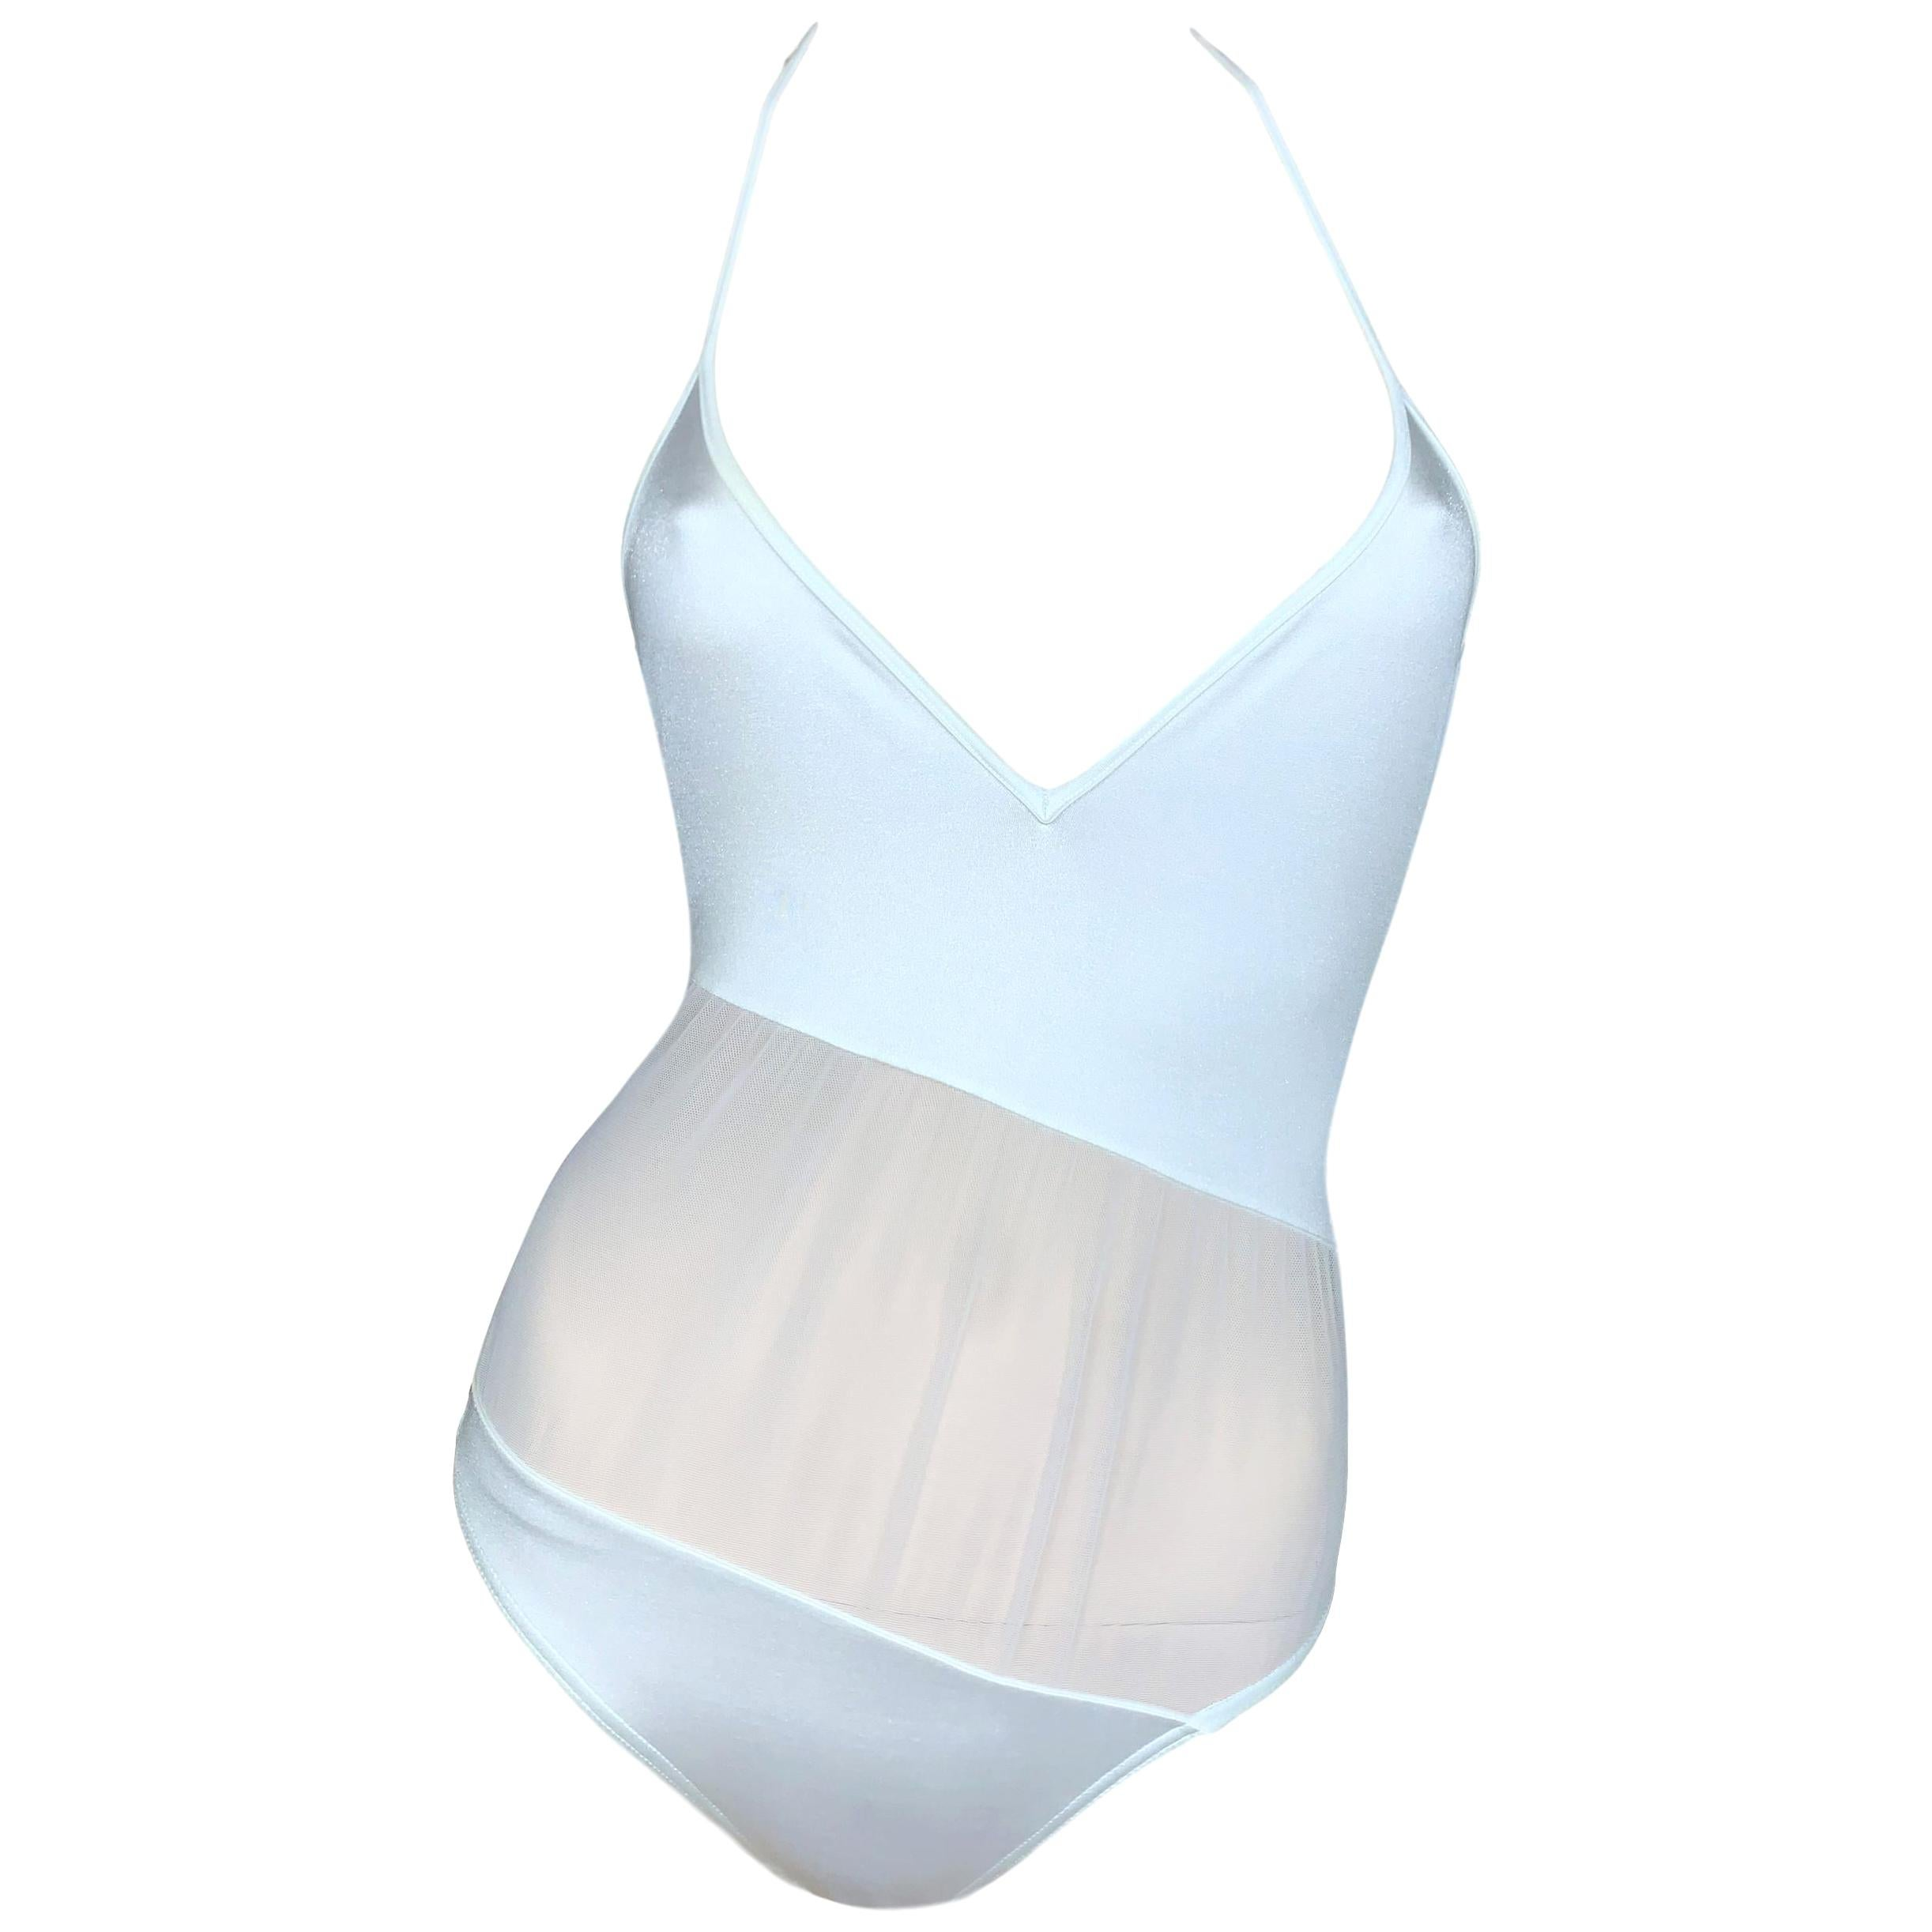 S/S 1997 Gucci Tom Ford Sheer White Mesh Plunging Swimsuit